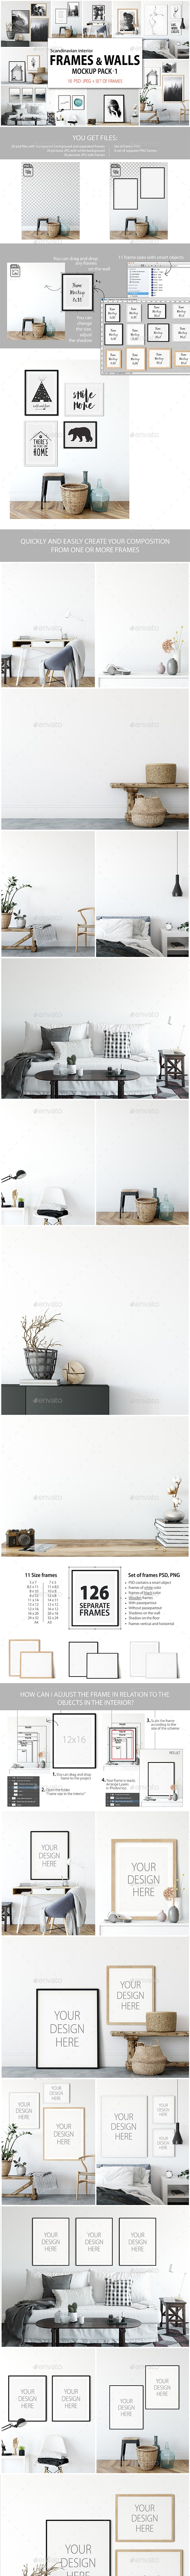 Scandinavian Interior Frames & Walls Mockup Pack -1 - Product Mock-Ups Graphics